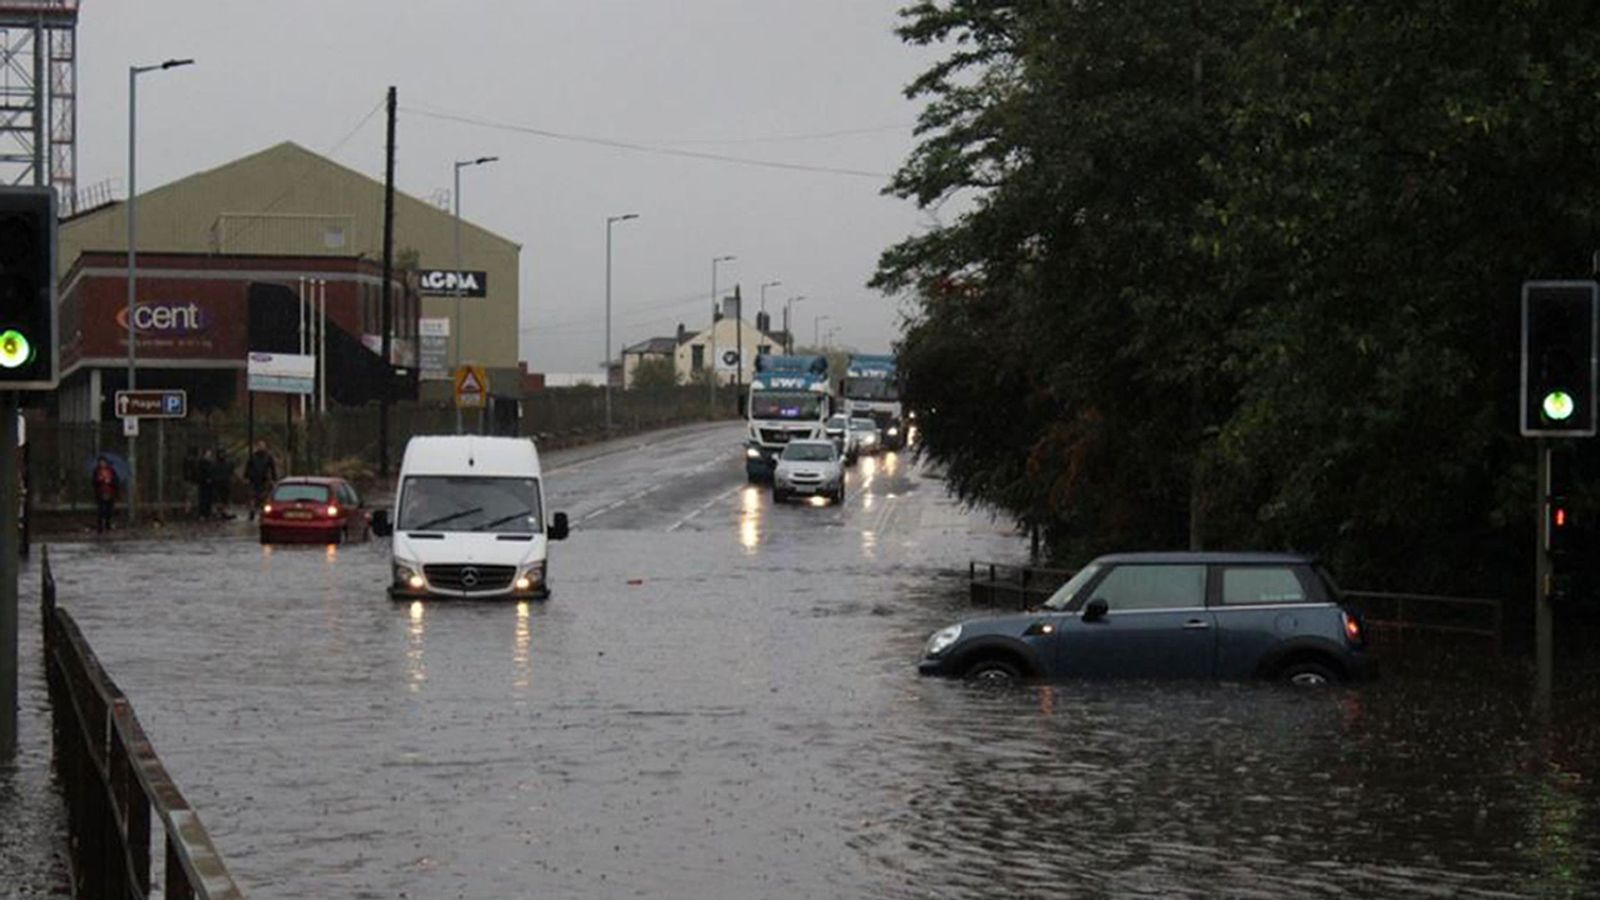 Storm Bronagh brings flash floods and 76mph winds